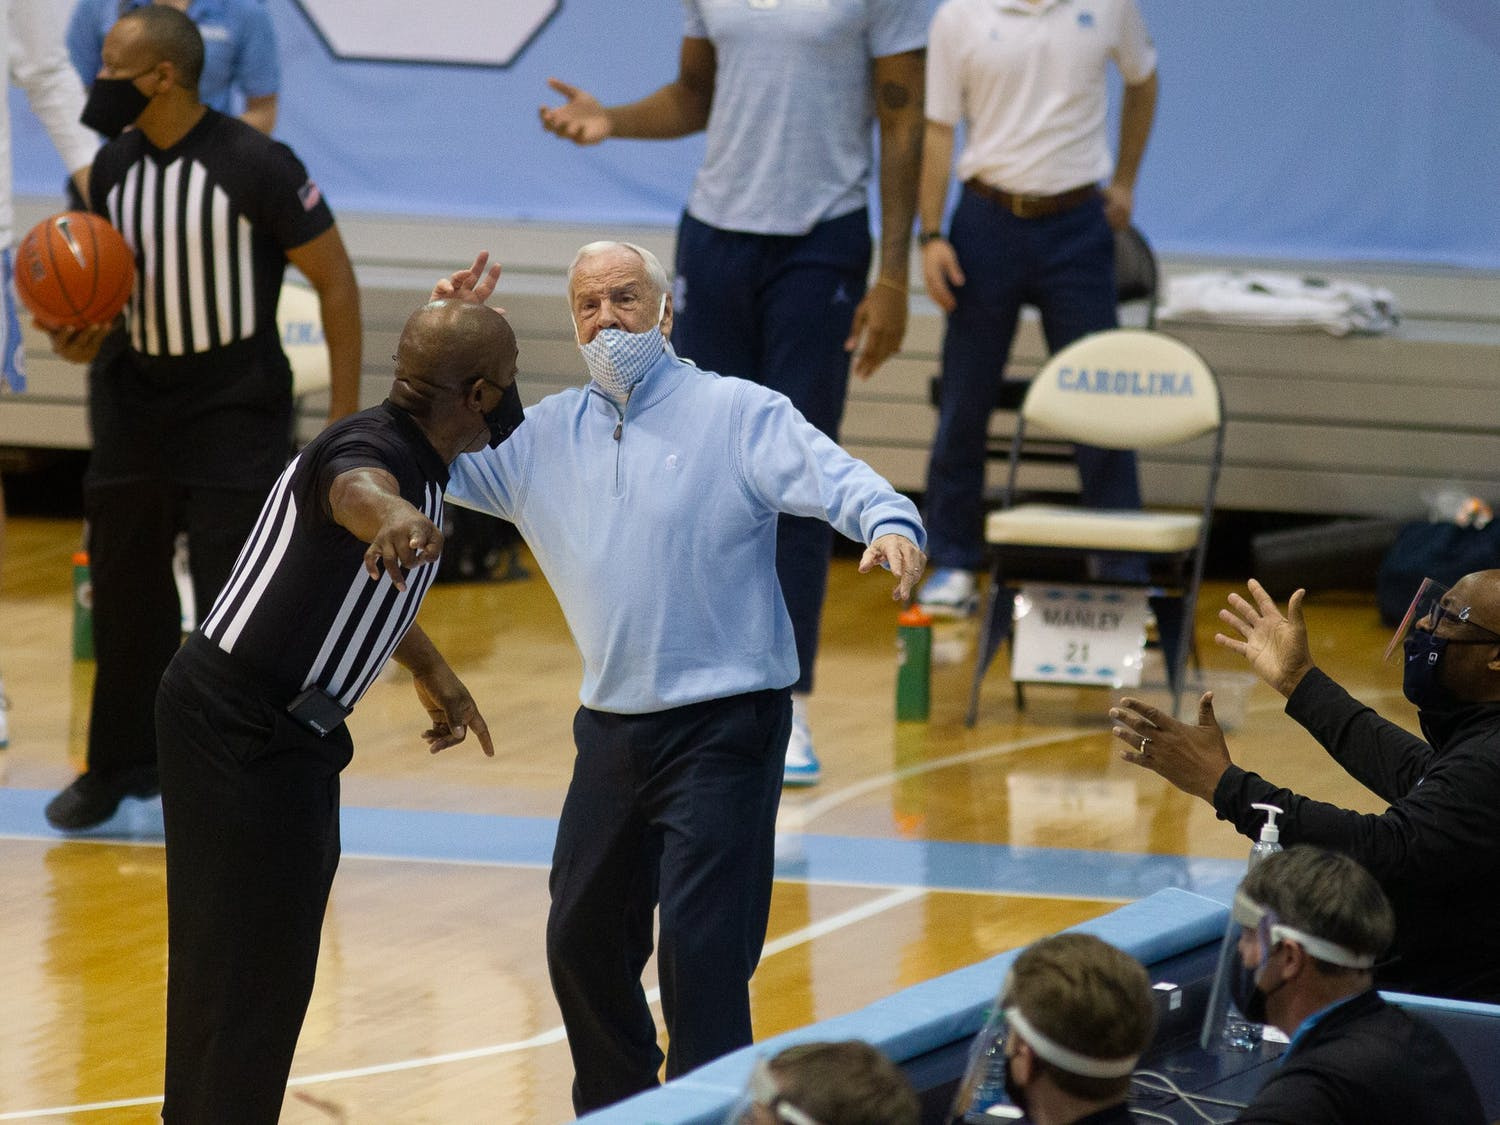 Coach Roy Williams argues with a referee during a game against Wake Forest in the Smith Center on Wednesday, Jan. 20, 2021. The Tar Heels beat the Demon Deacons 80-73.